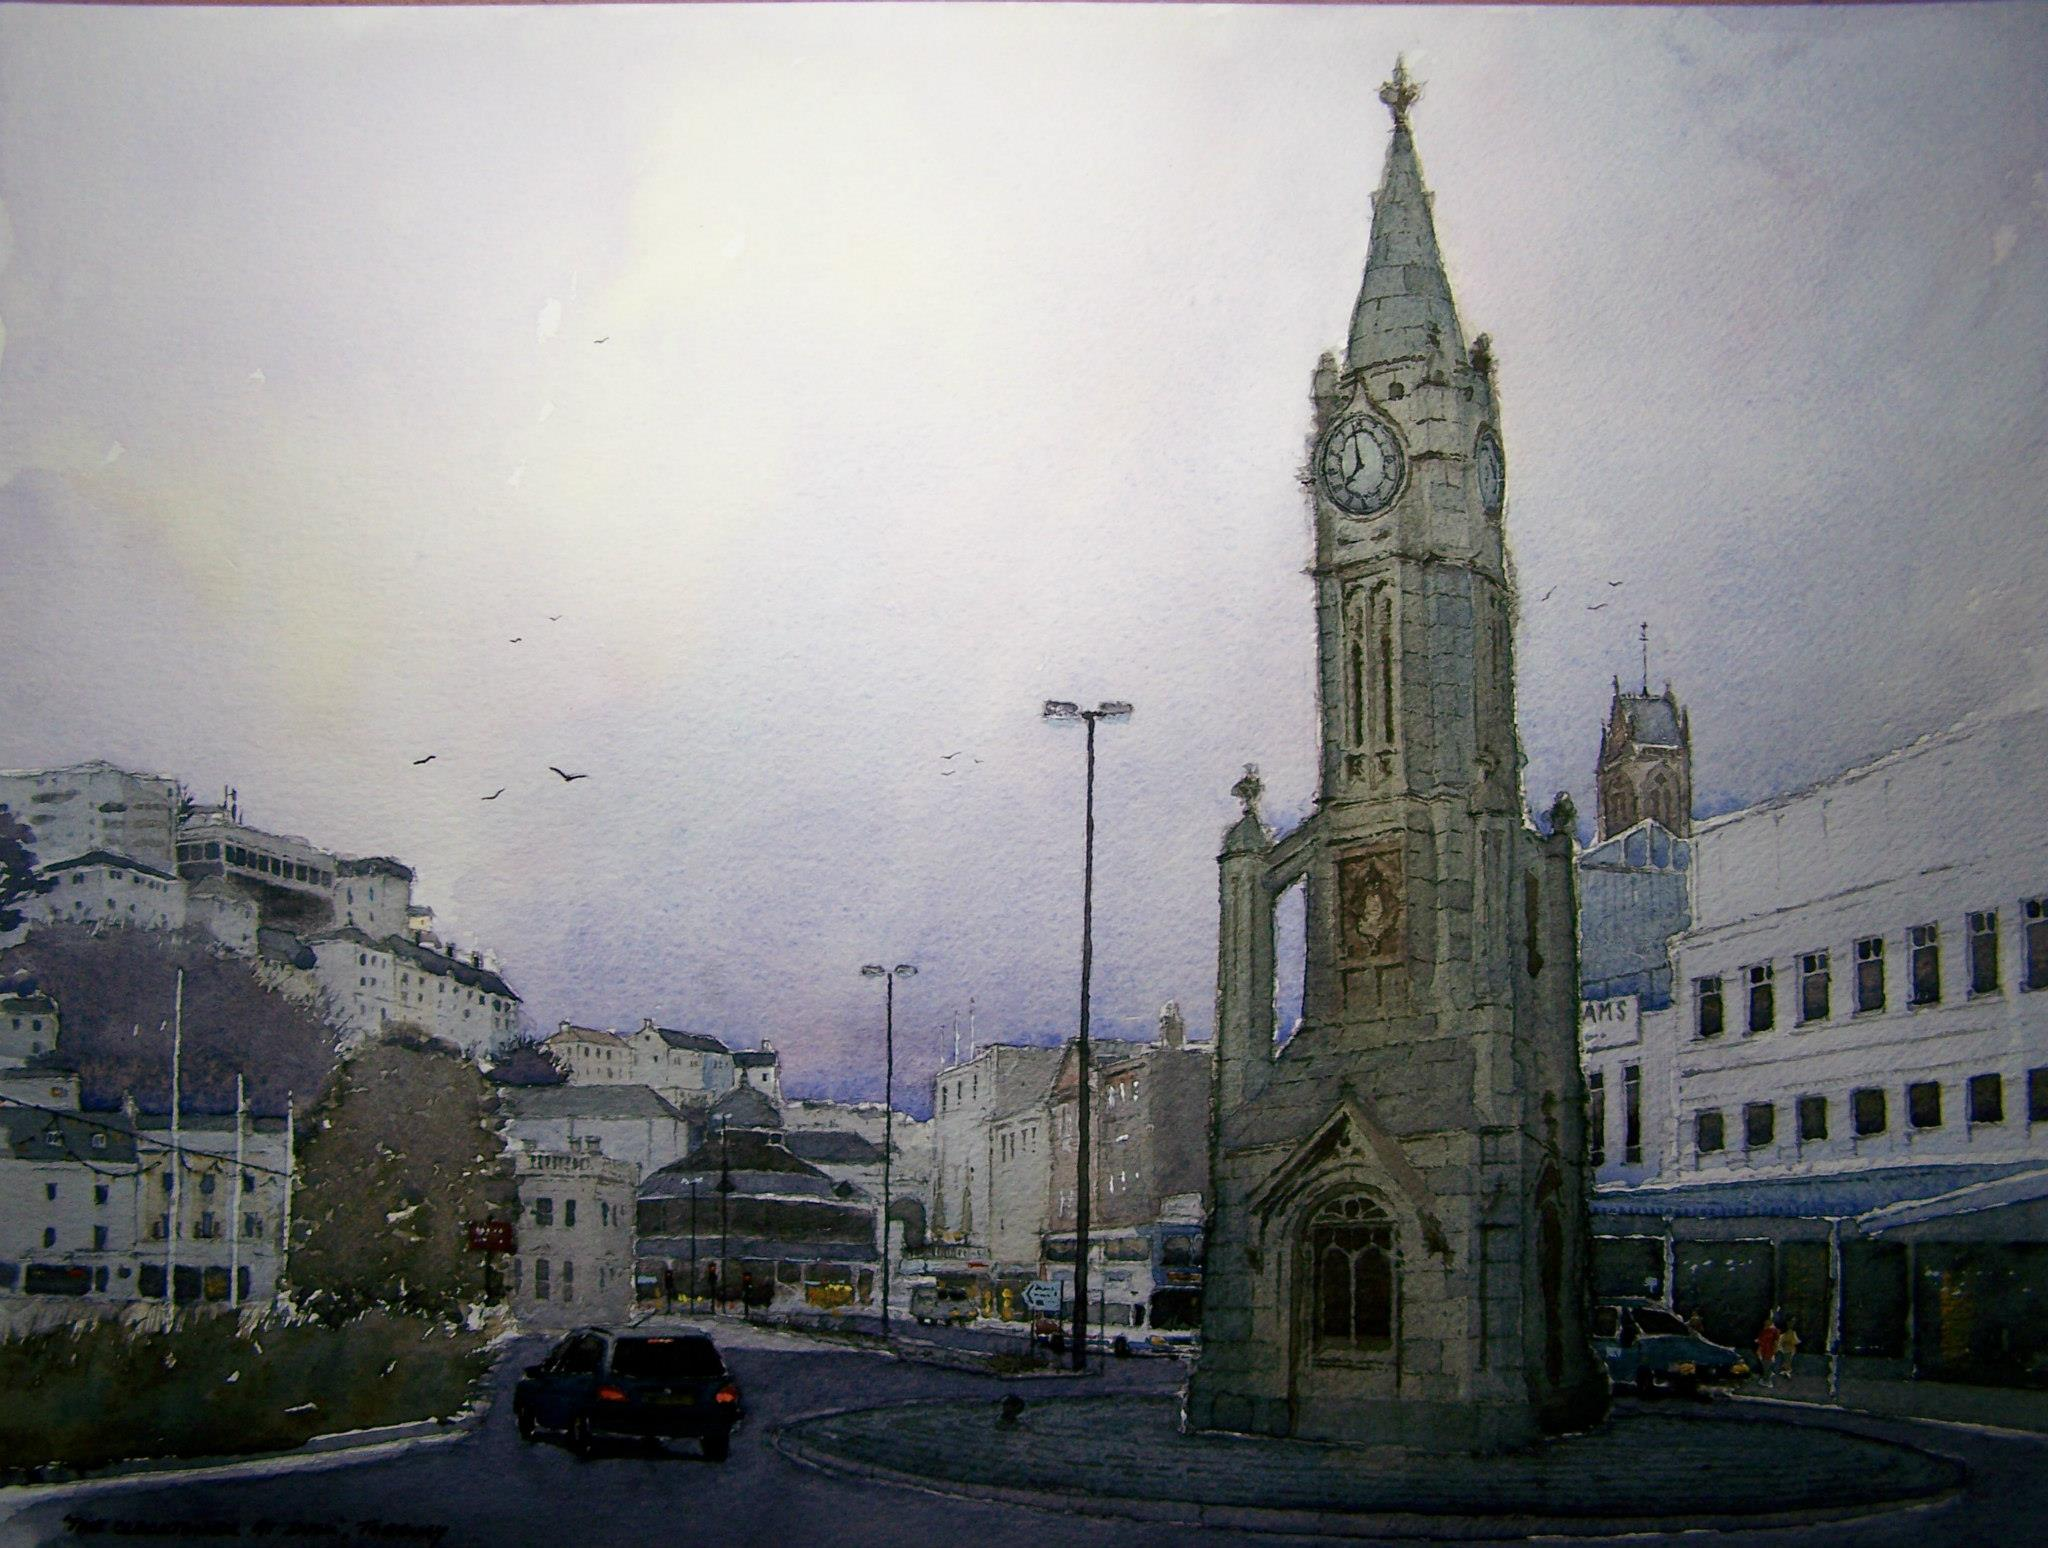 The clocktower at dusk, Torquay